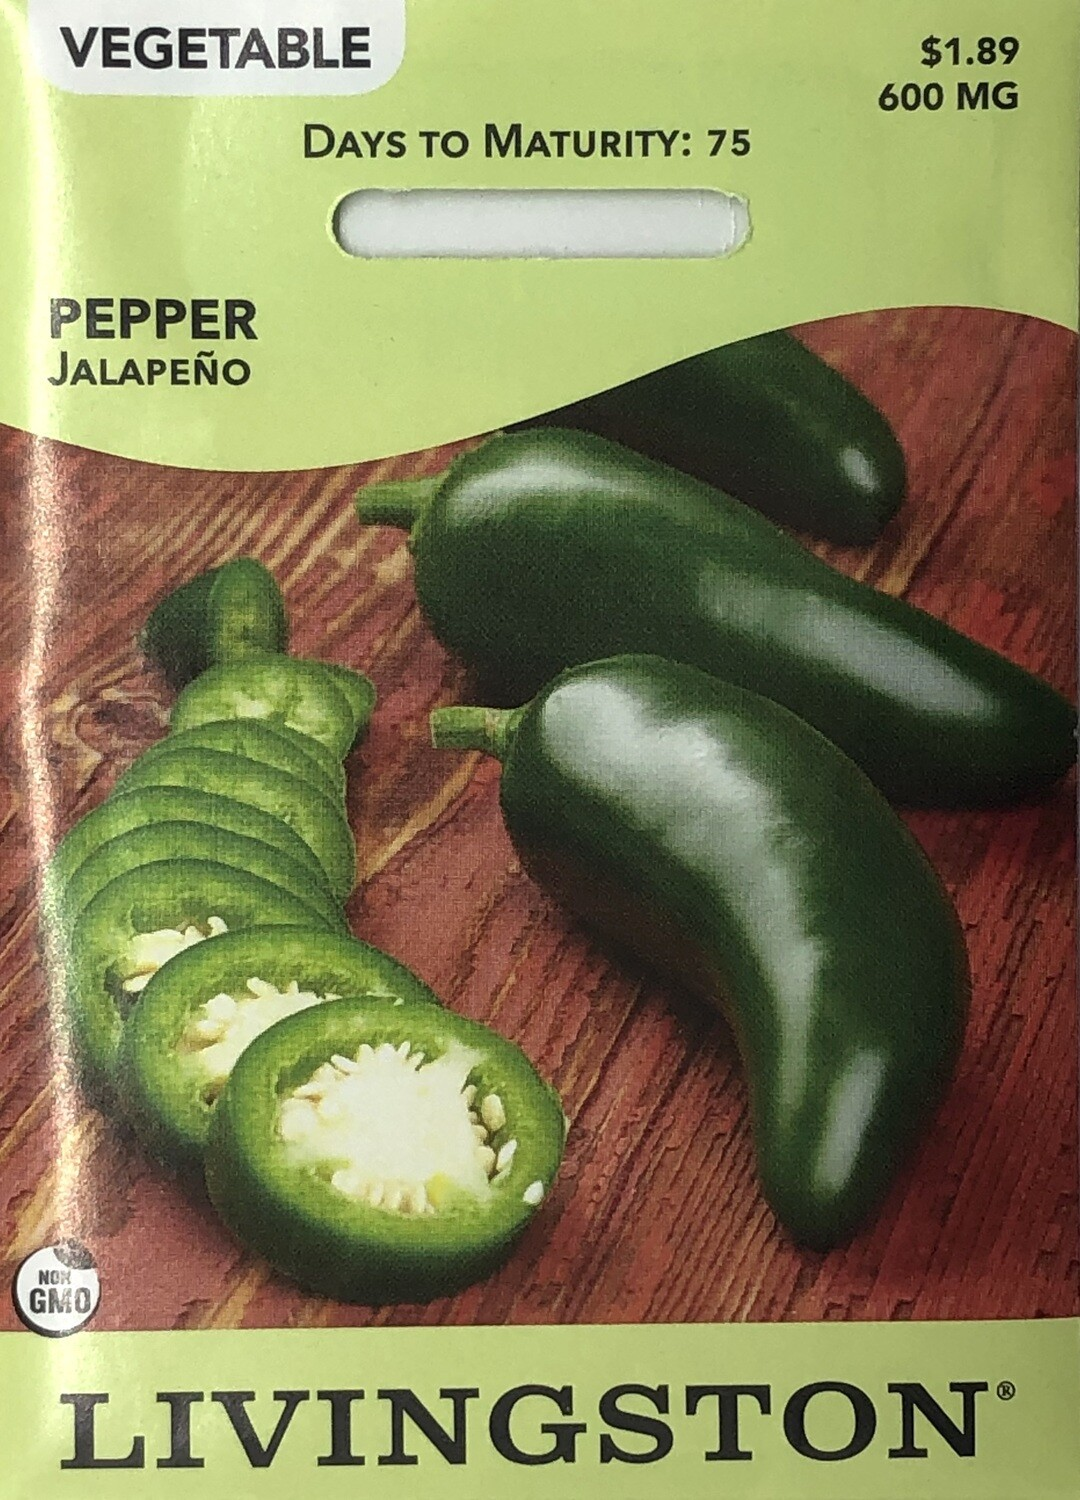 PEPPER - JALAPENO